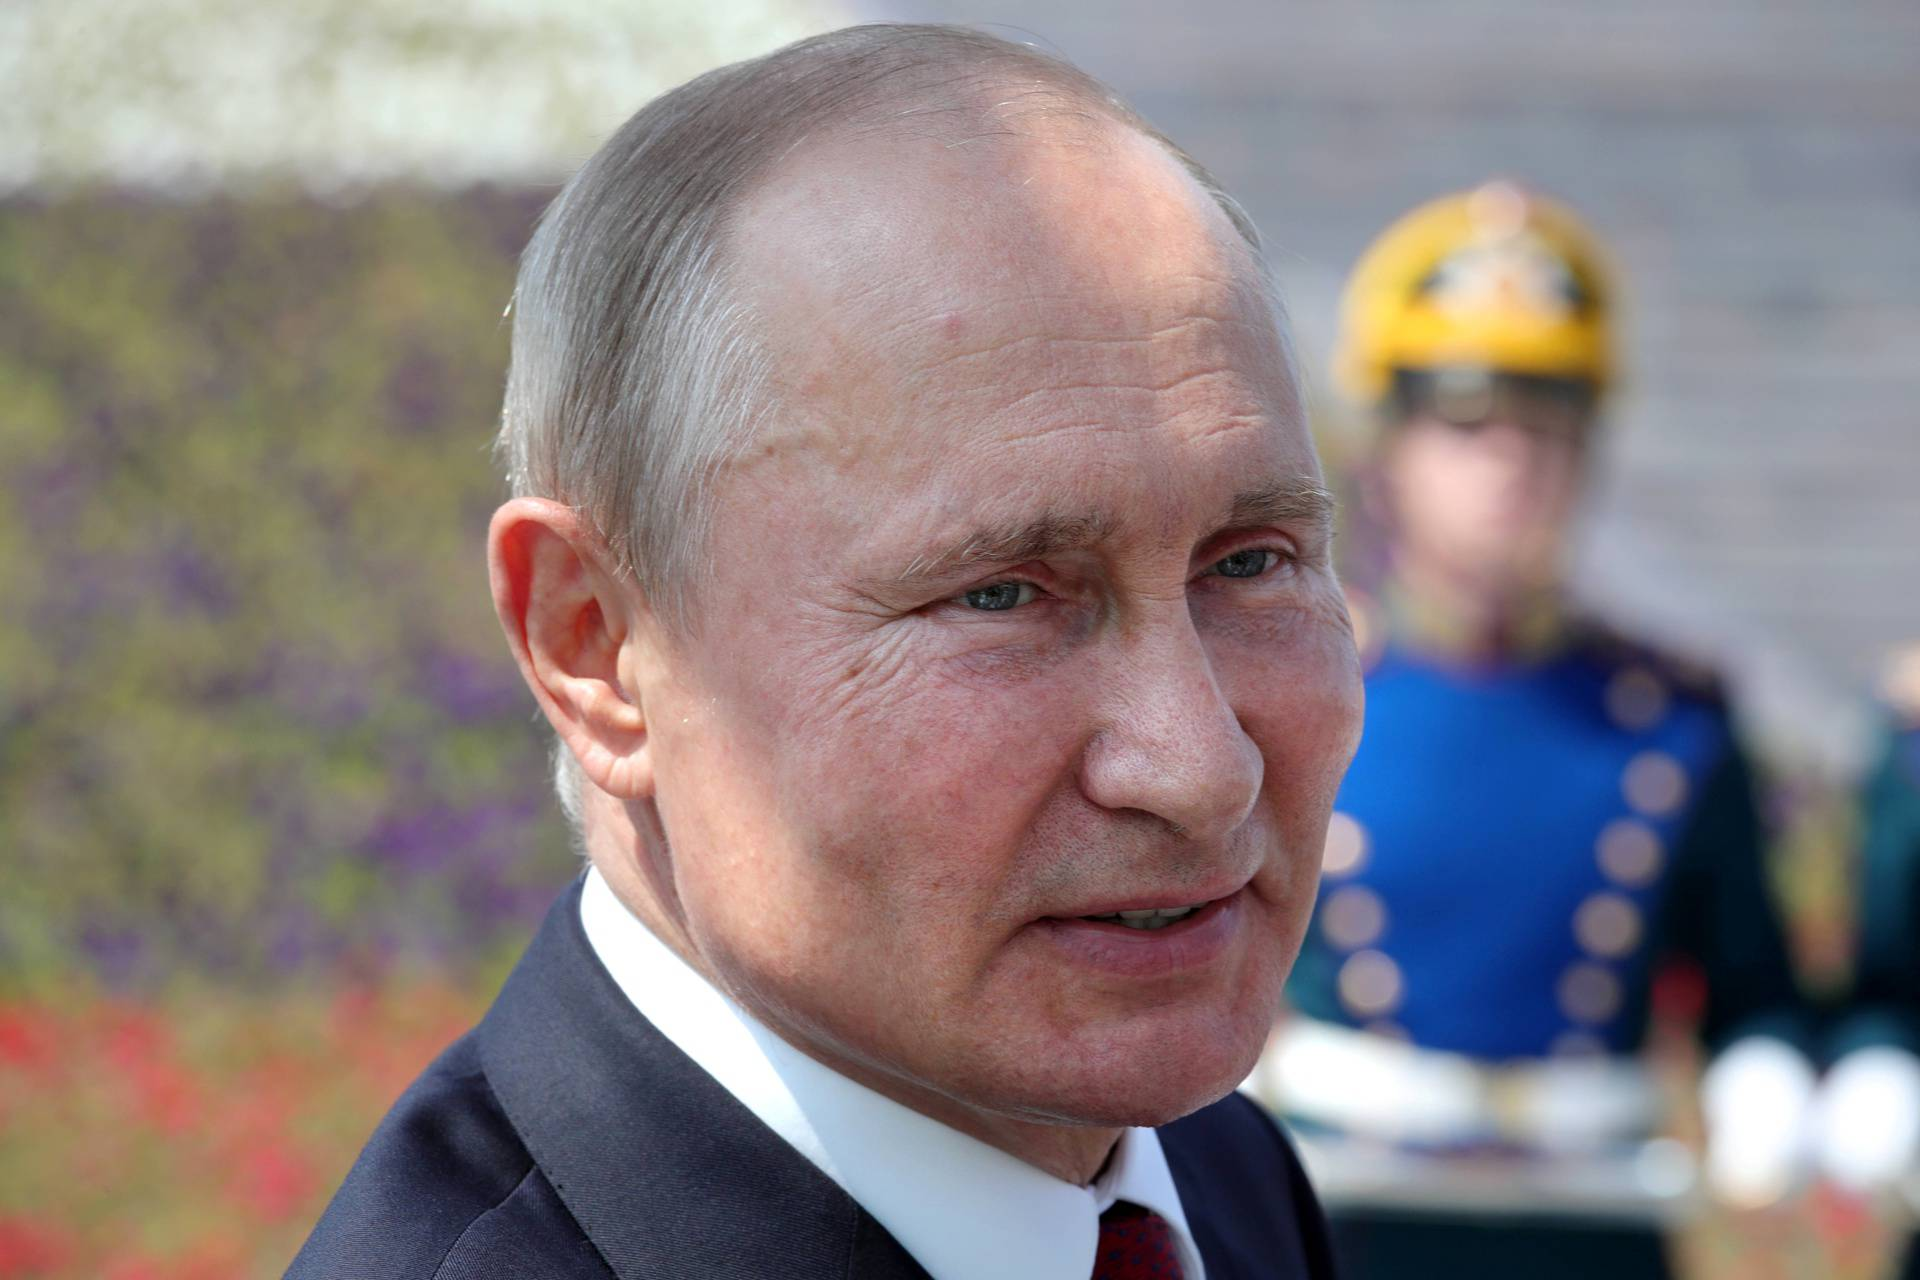 Russian President Vladimir Putin attends an awards ceremony marking Russia Day in Moscow